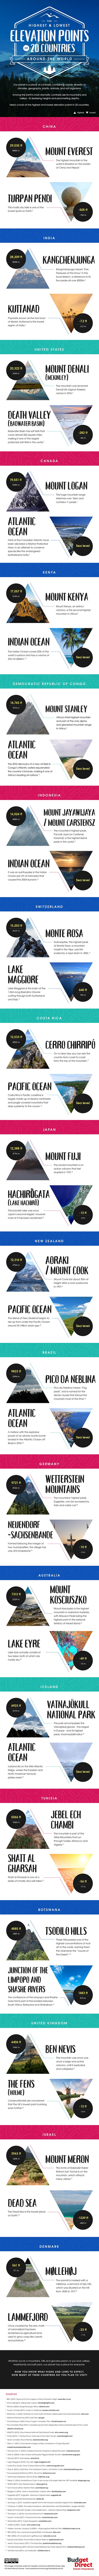 The Highs and Lows of Our Planet - Infographic